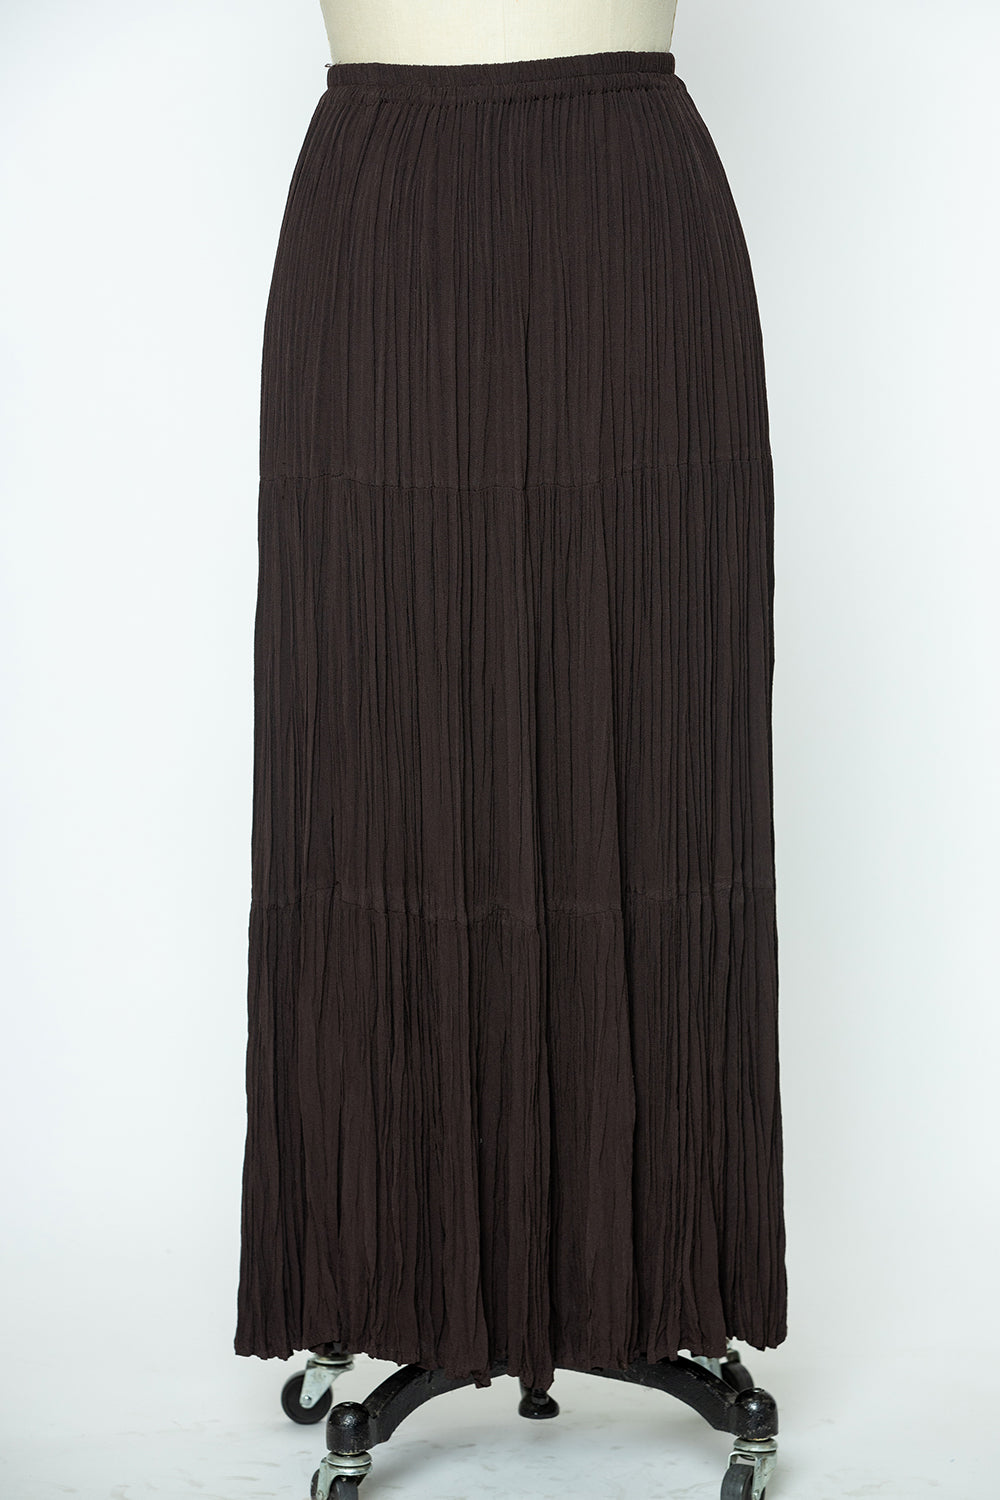 Crepe Broom Skirt - Vintage